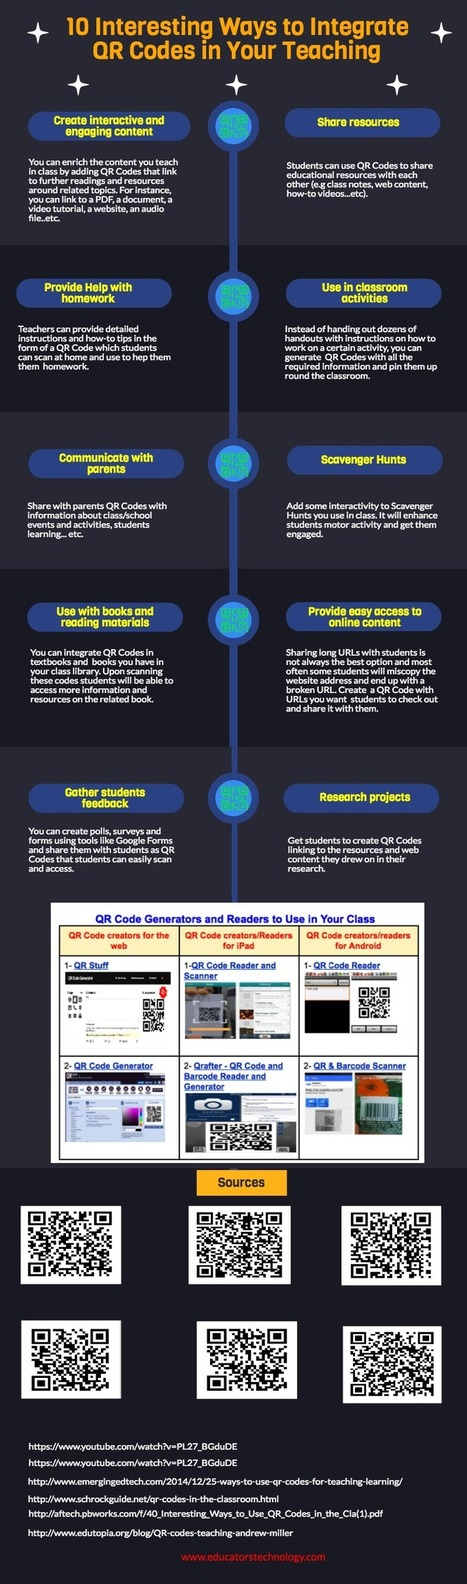 10 Interesting Ways to Integrate QR Codes in Your Teaching (Infographic) ~ Educational Technology and Mobile Learning | ICT Nieuws | Scoop.it